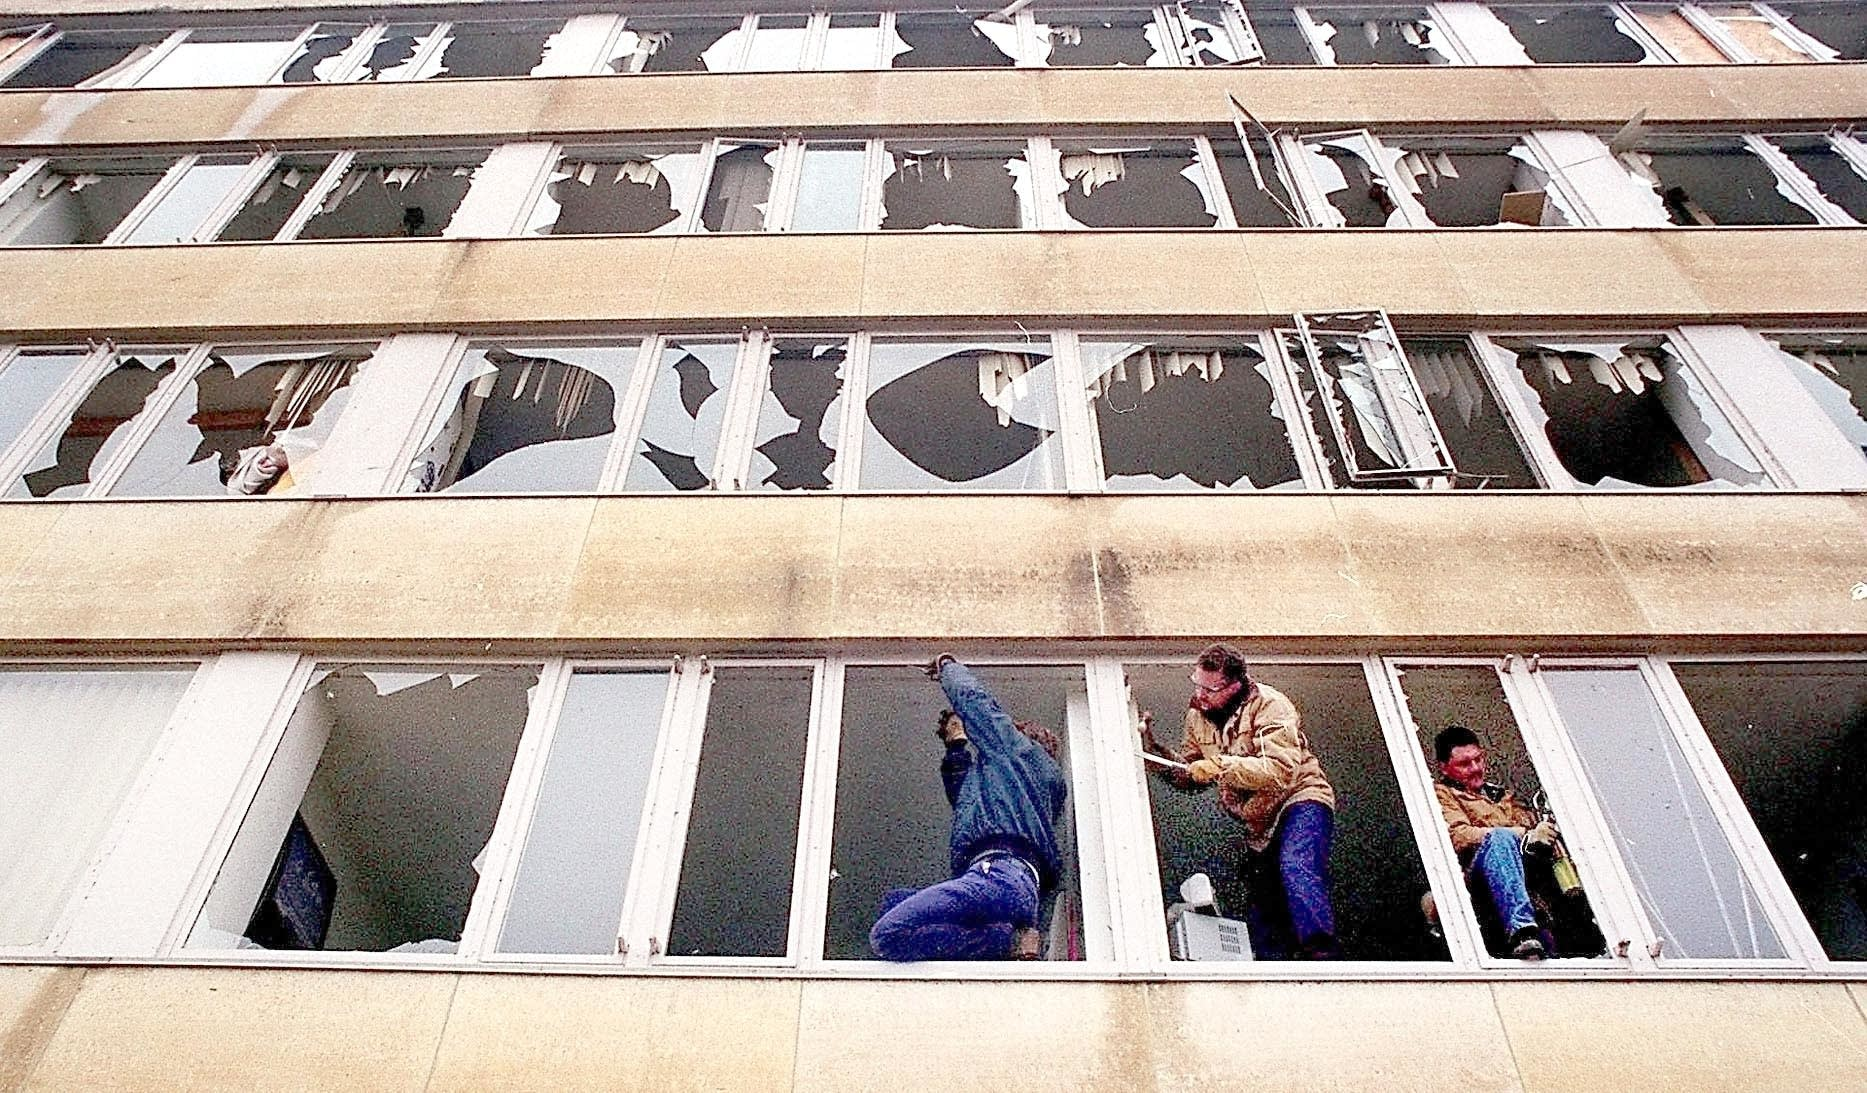 Workers remove broken glass in a Gustavus Adolphus residence hall.